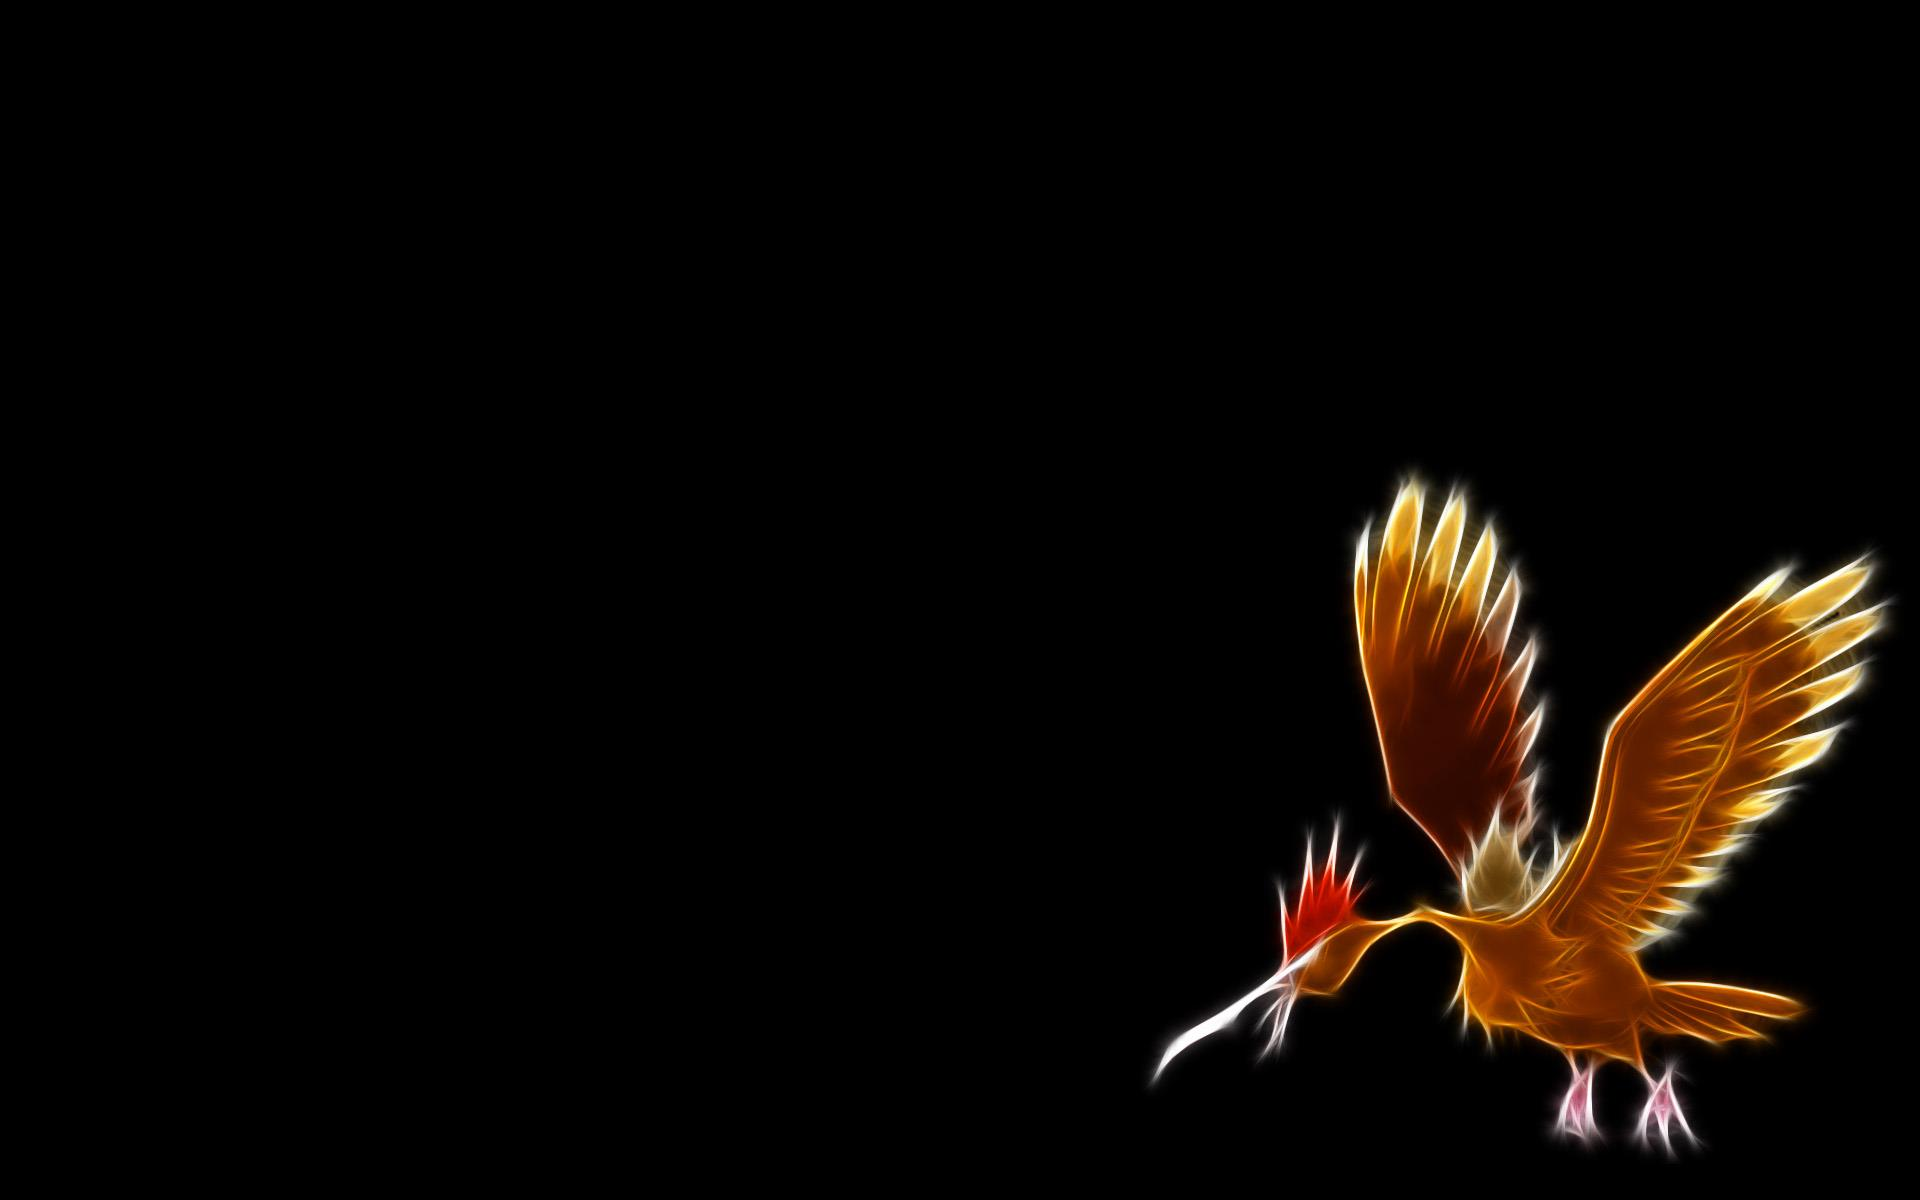 fearow-pokemon-wallpaper-free-download